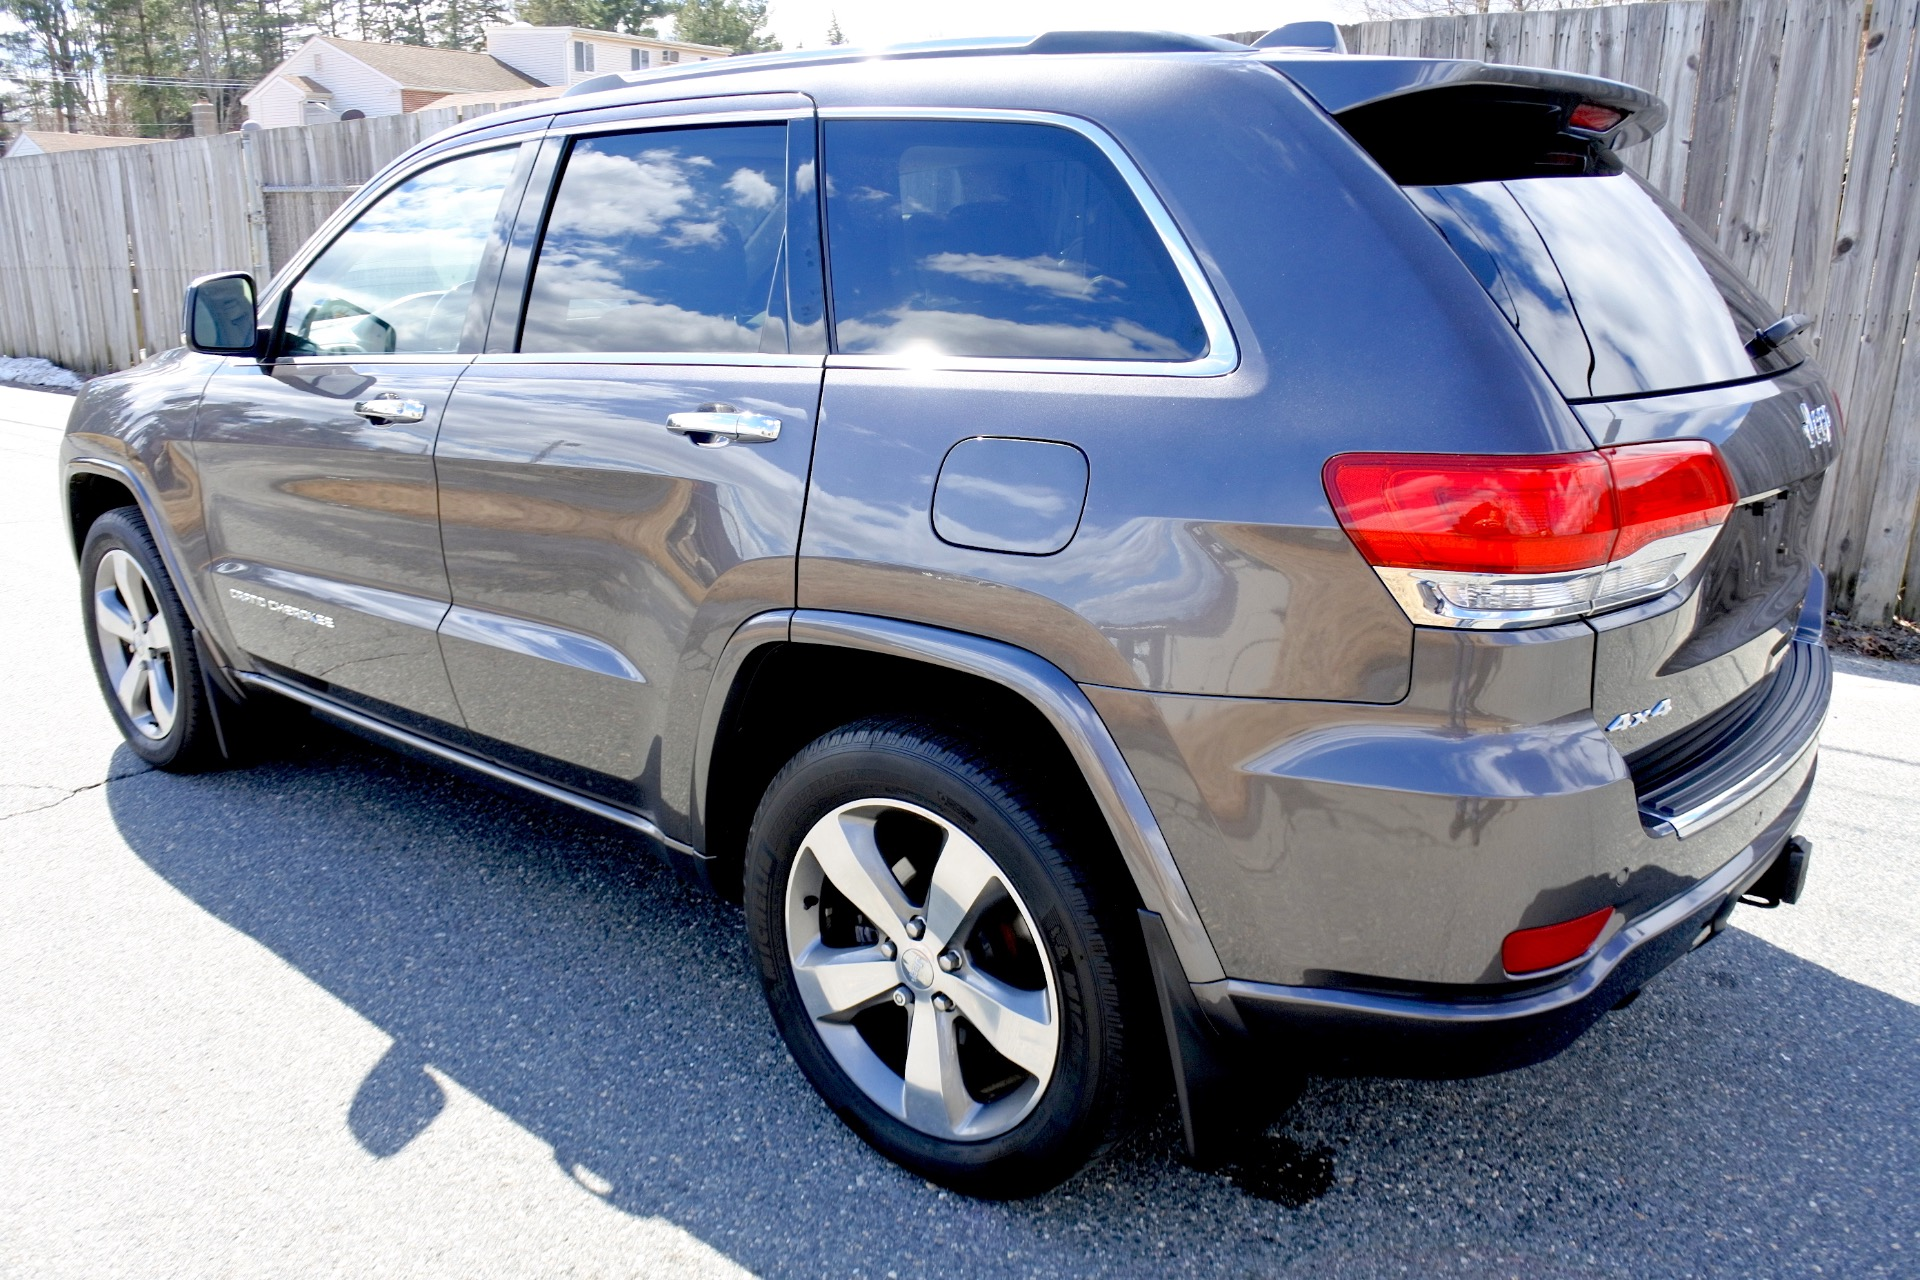 Used 2014 Jeep Grand Cherokee 4WD 4dr Overland Used 2014 Jeep Grand Cherokee 4WD 4dr Overland for sale  at Metro West Motorcars LLC in Shrewsbury MA 3